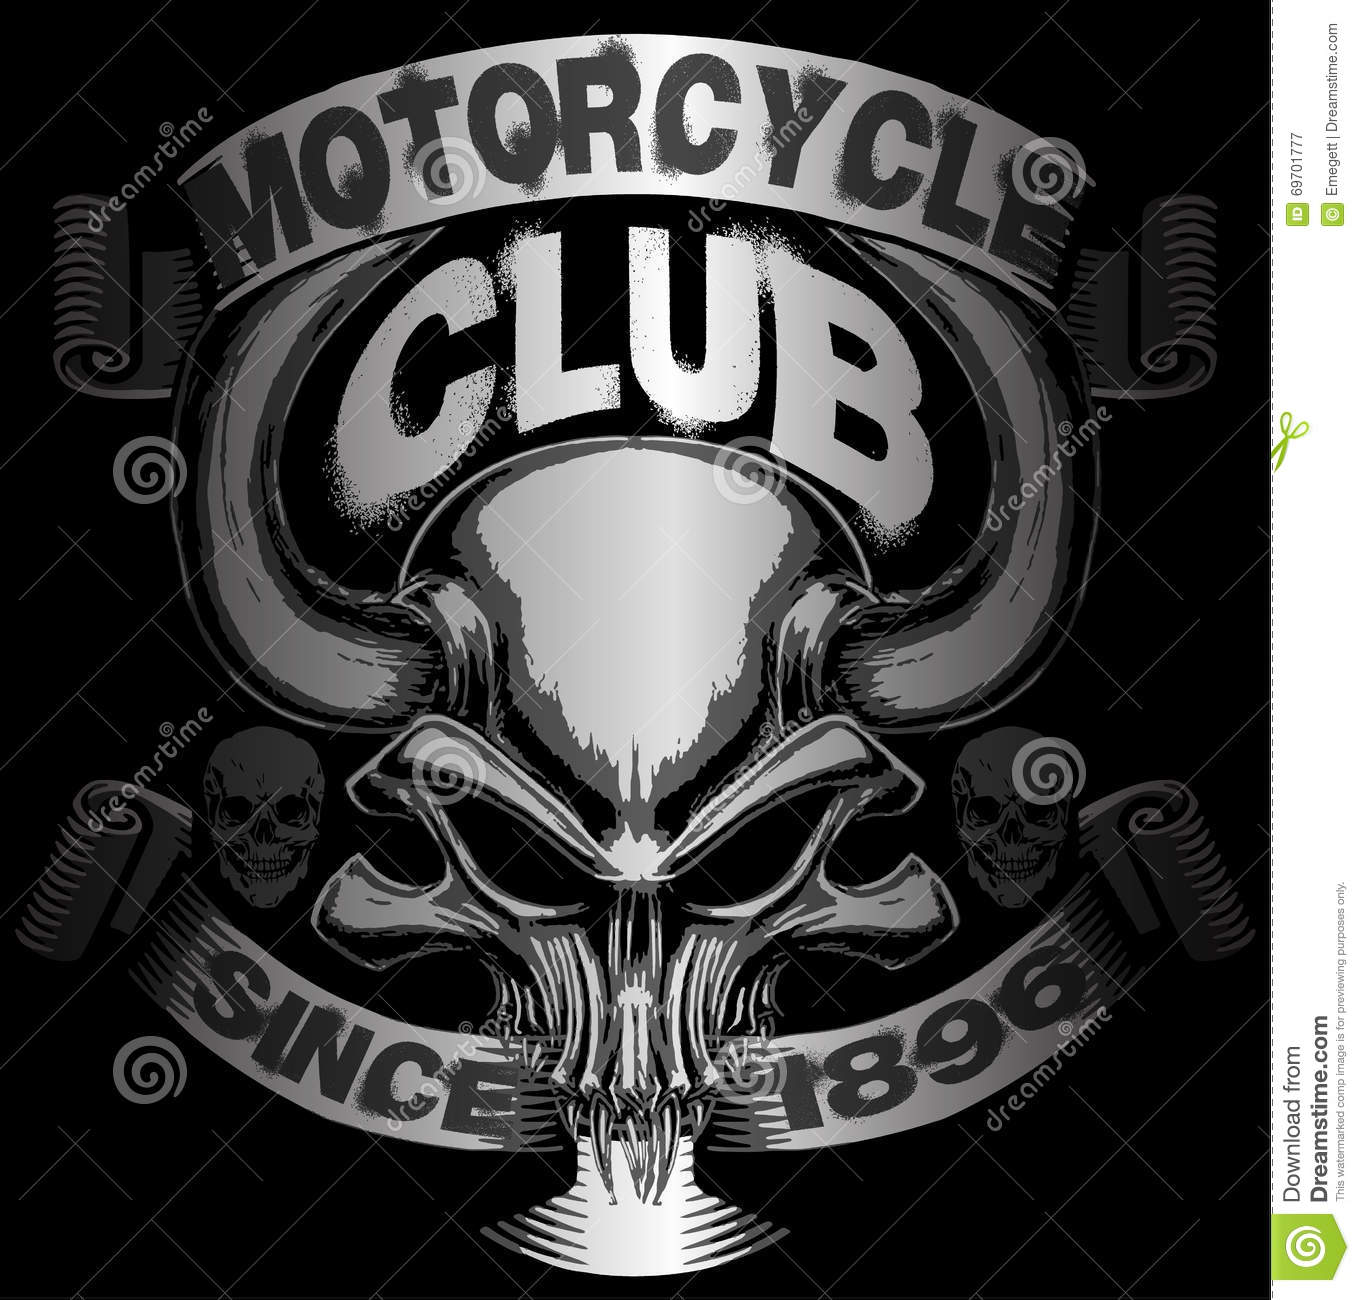 Skull t shirt graphic design motorcycle design stock for T shirt graphic designer